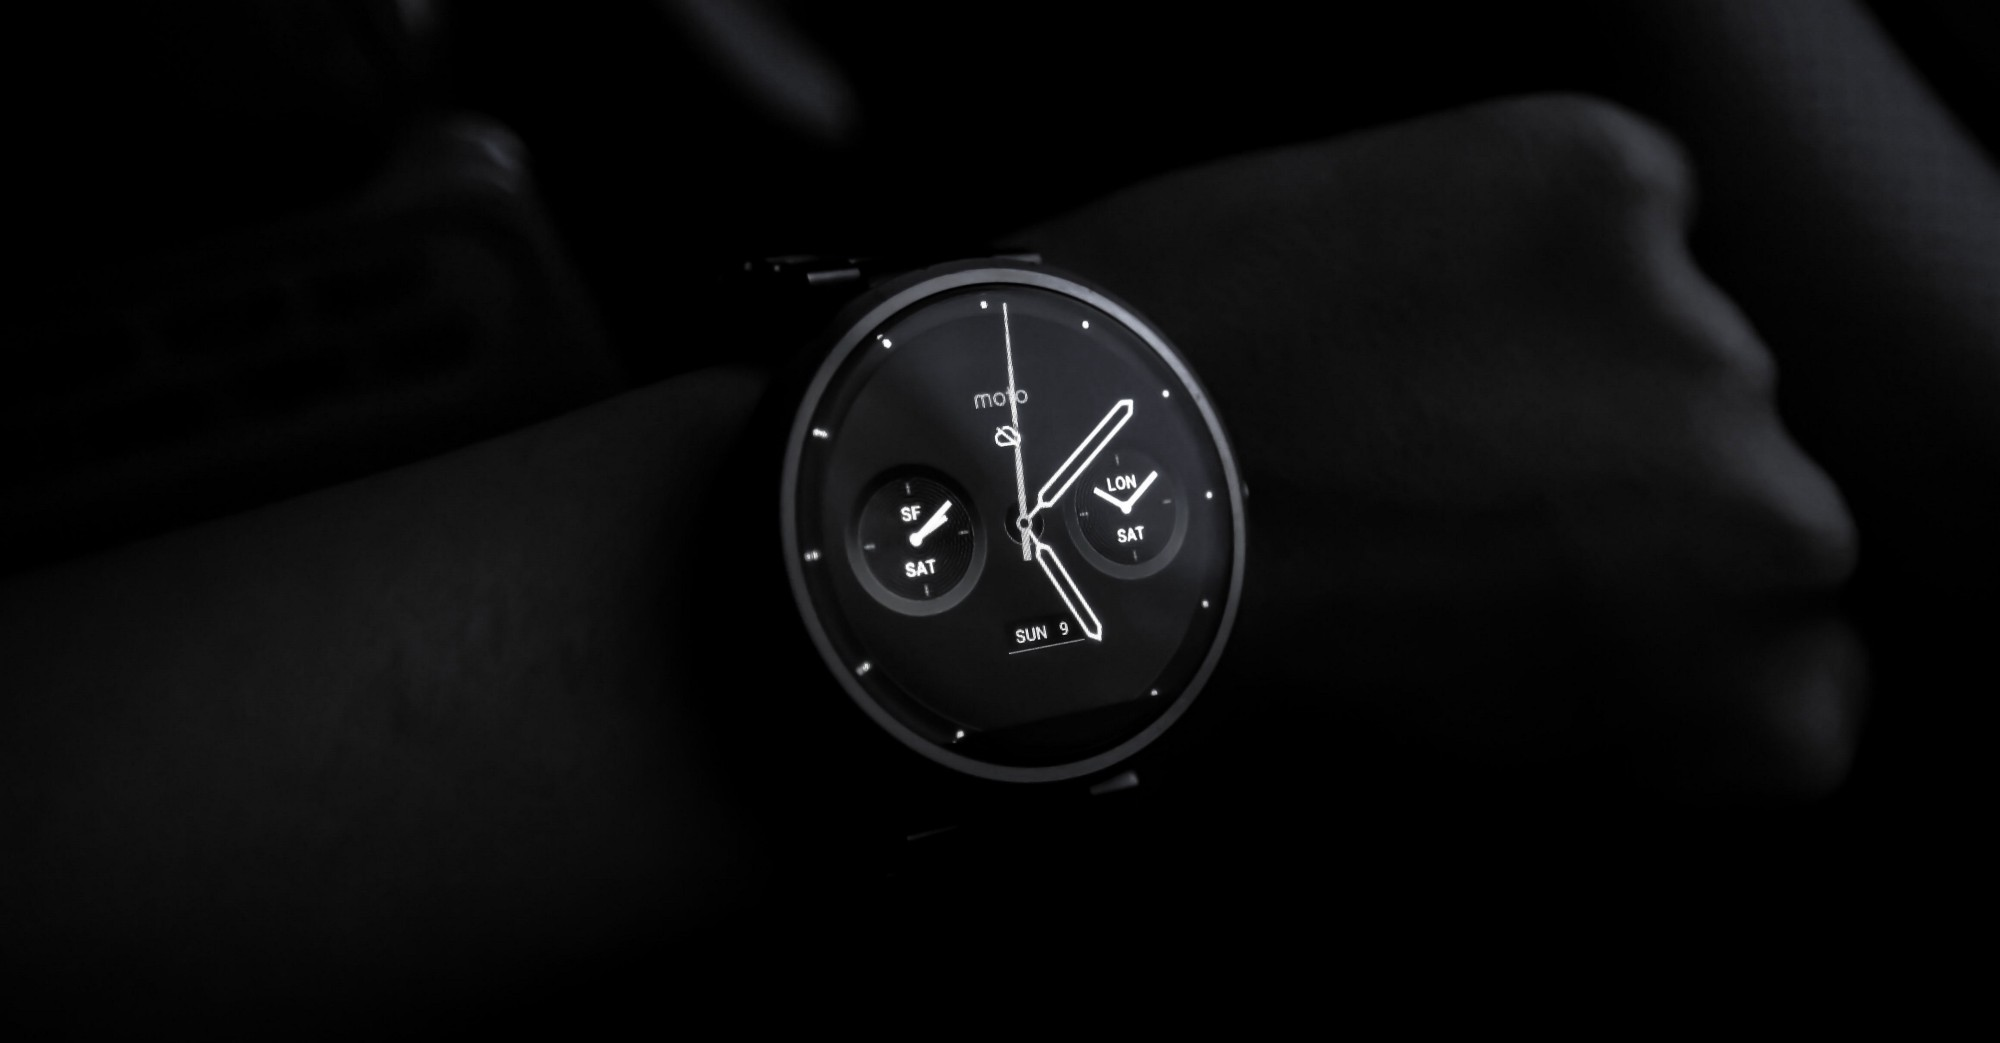 A Moto brand smartwatch shot in the dark, highlighting analogue clock with metrics like notifications & weather on watch face